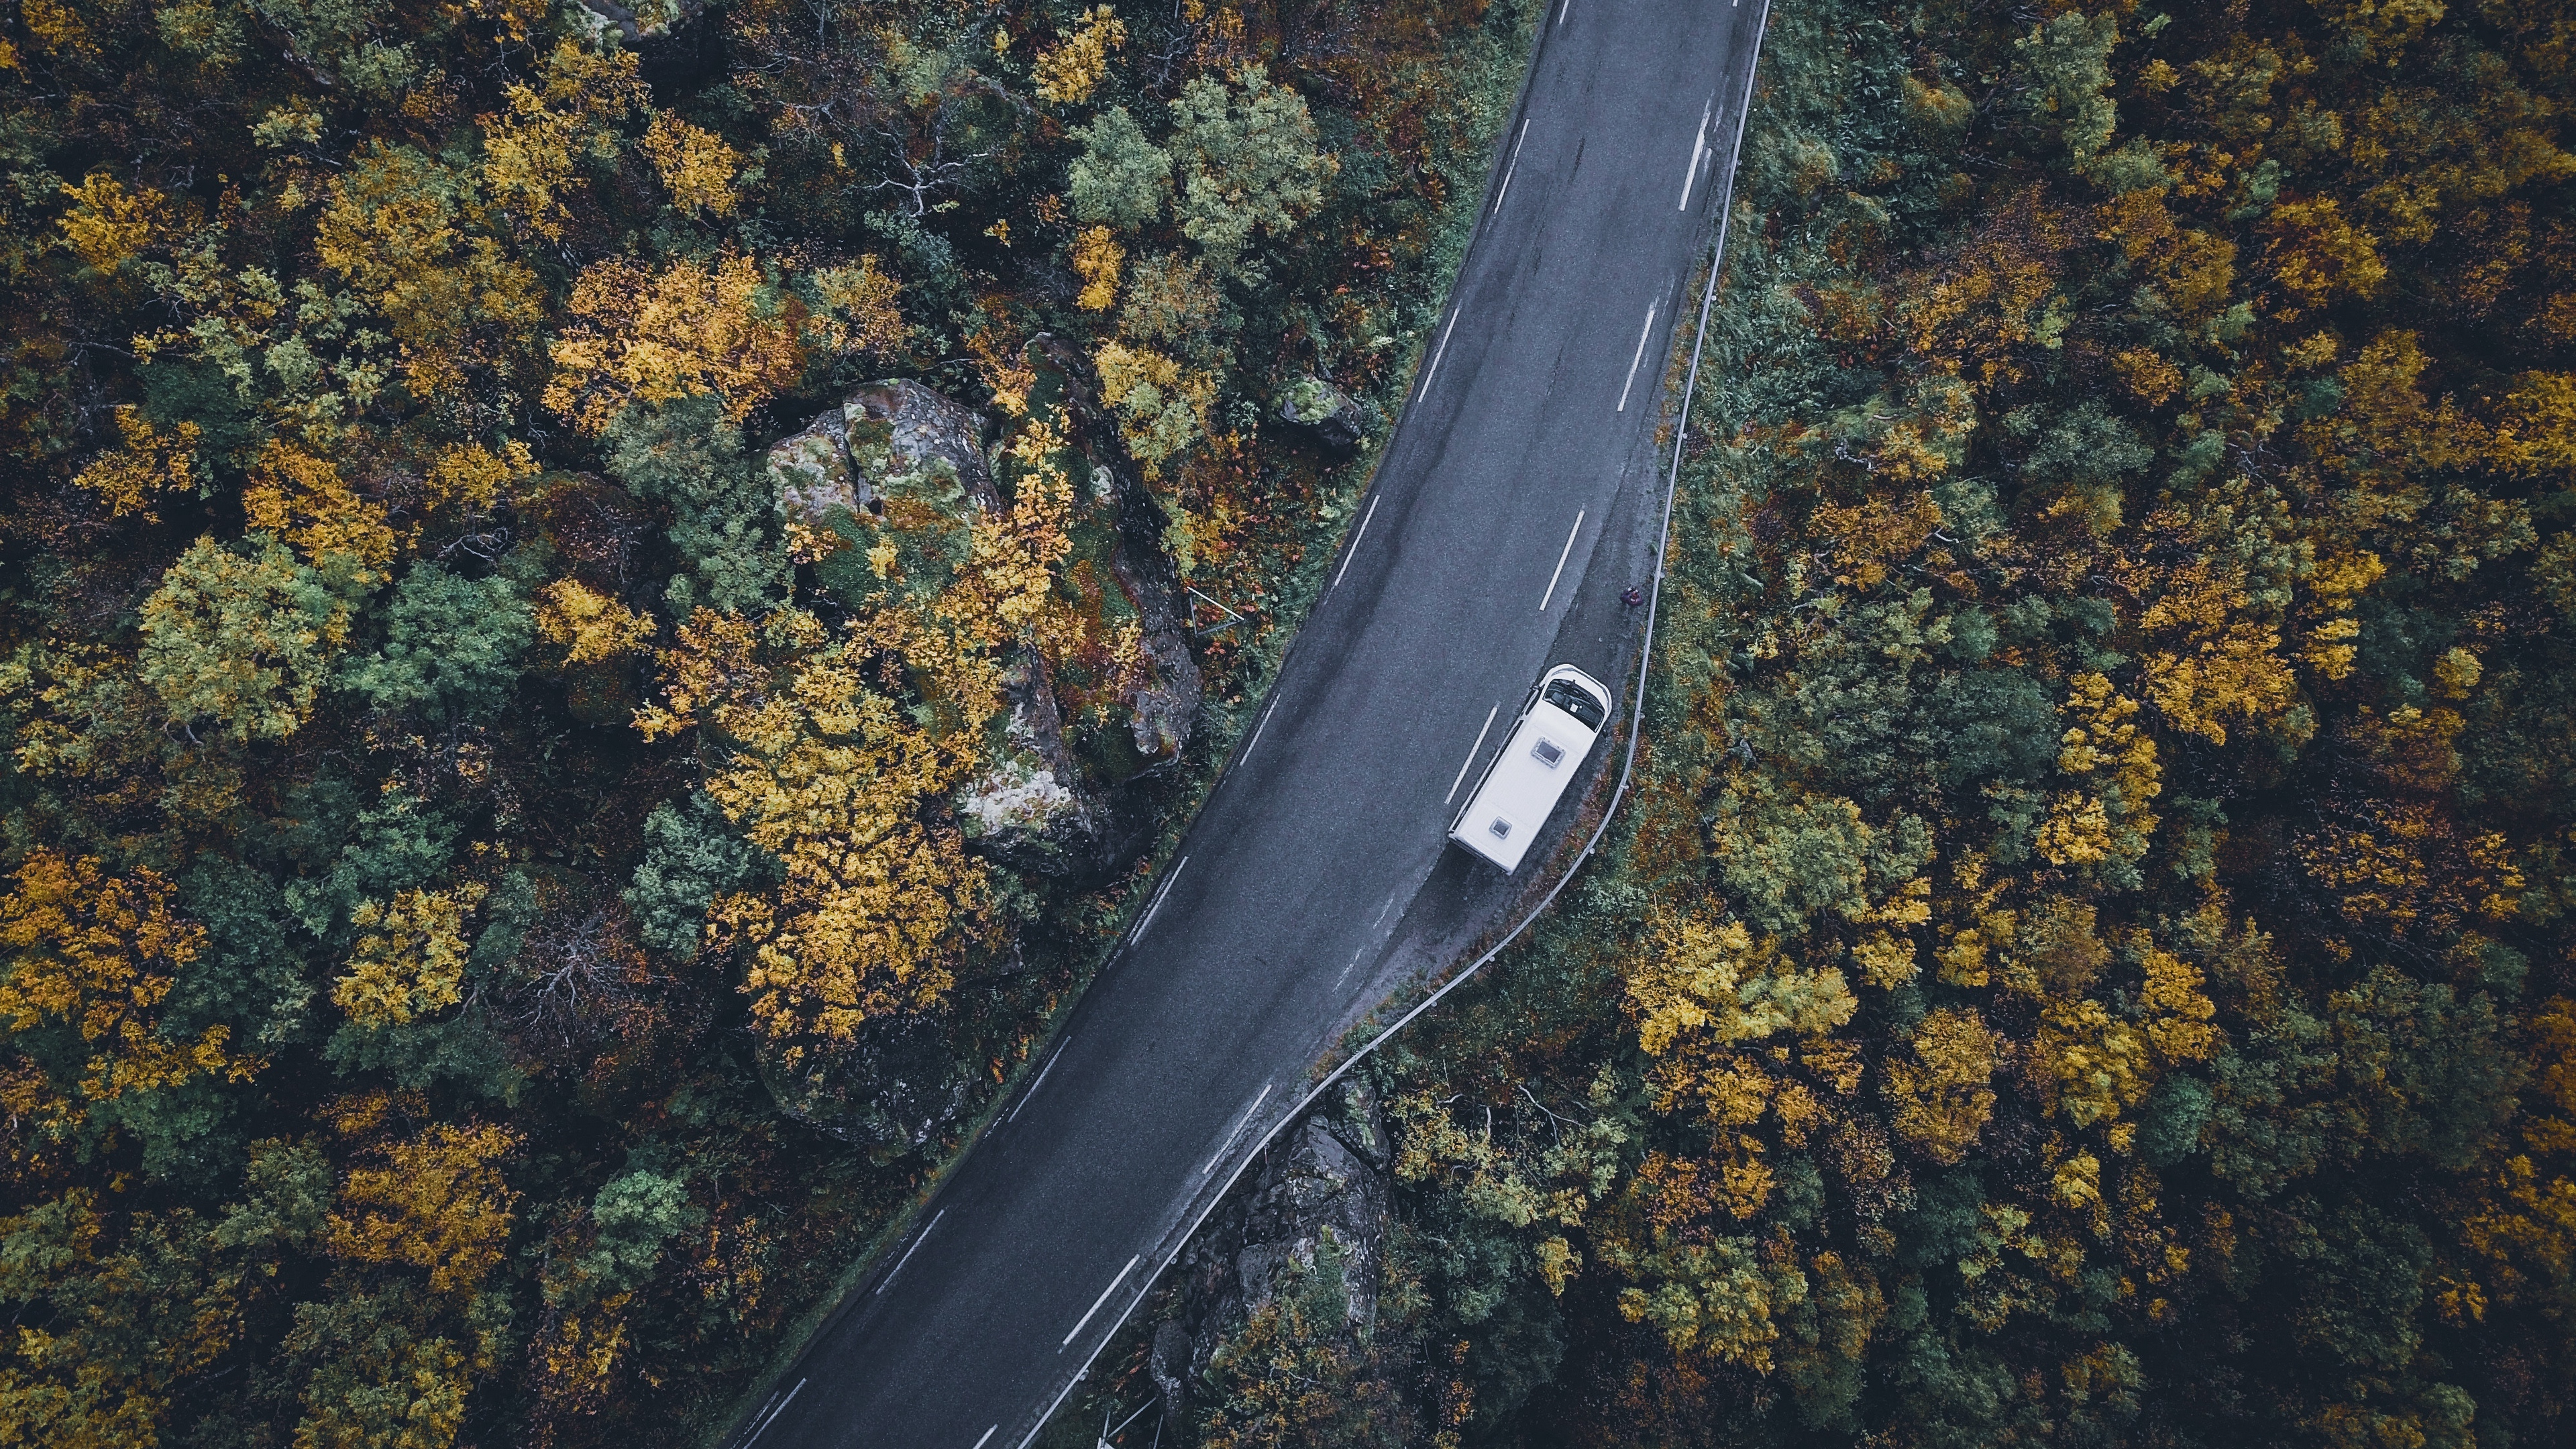 road top view trees autumn car 4k 1541117313 - road, top view, trees, autumn, car 4k - Trees, top view, Road